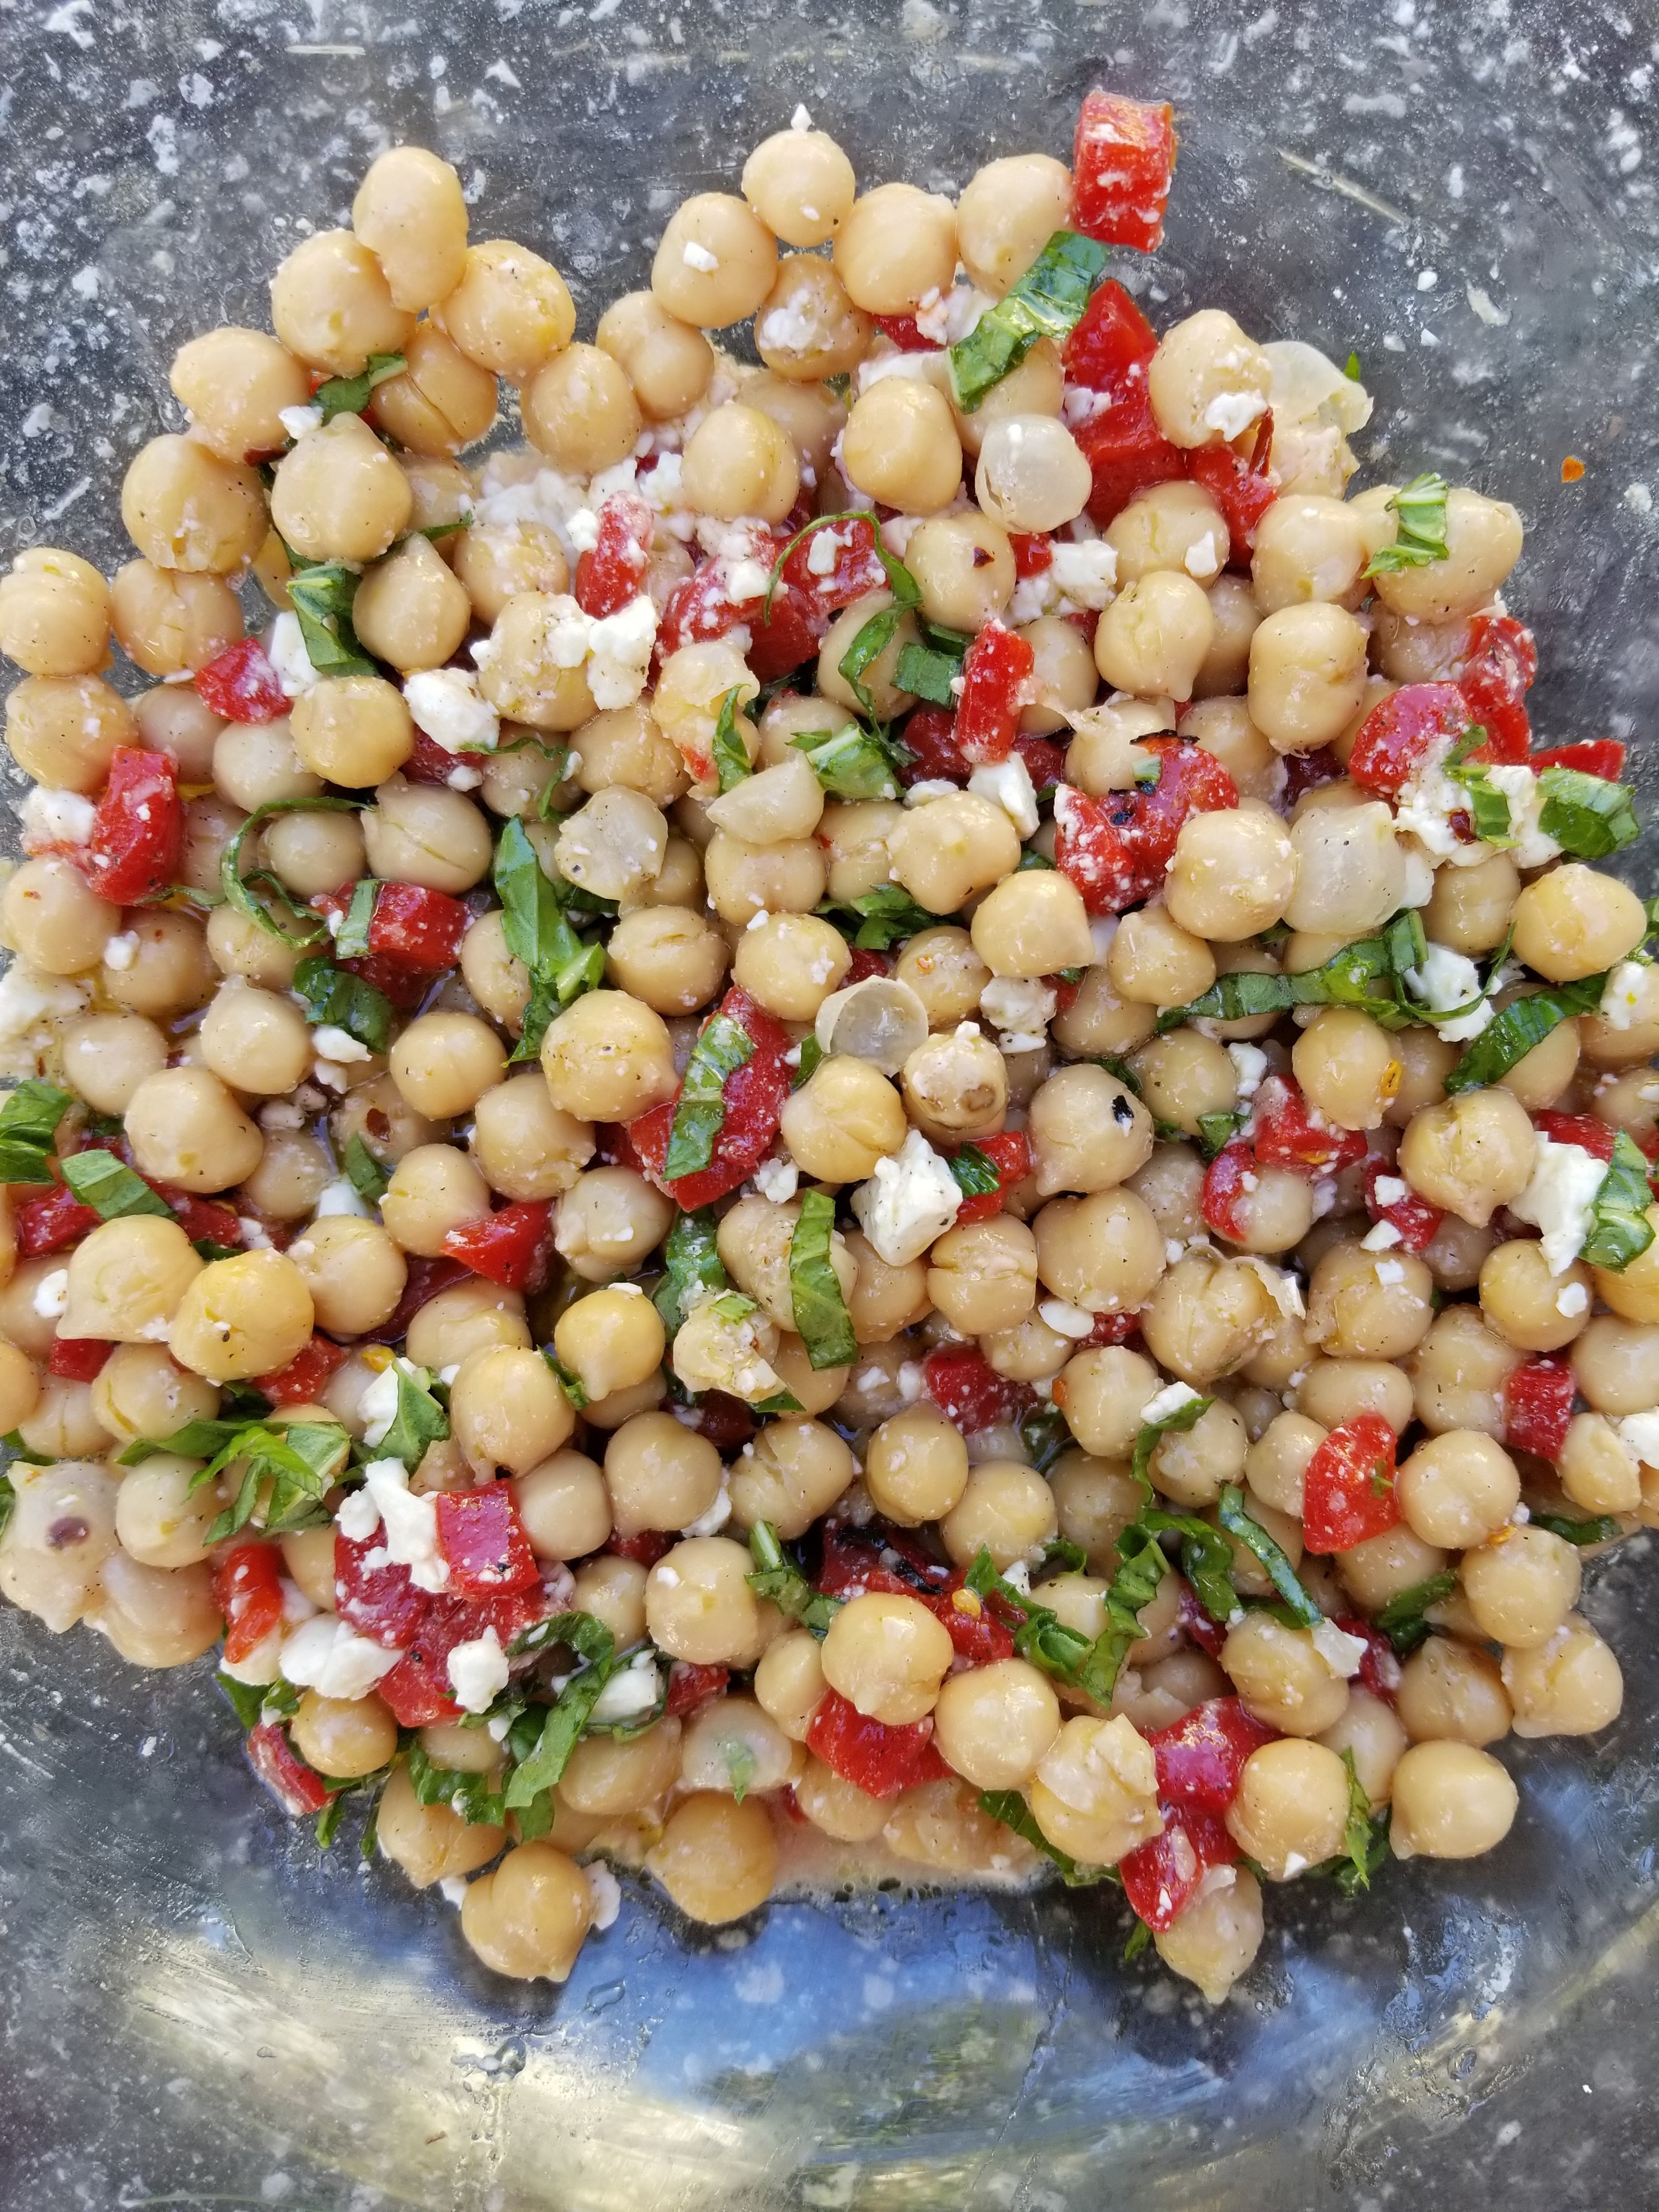 That's A Keeper 9 - Marinated Chickpeas.jpg